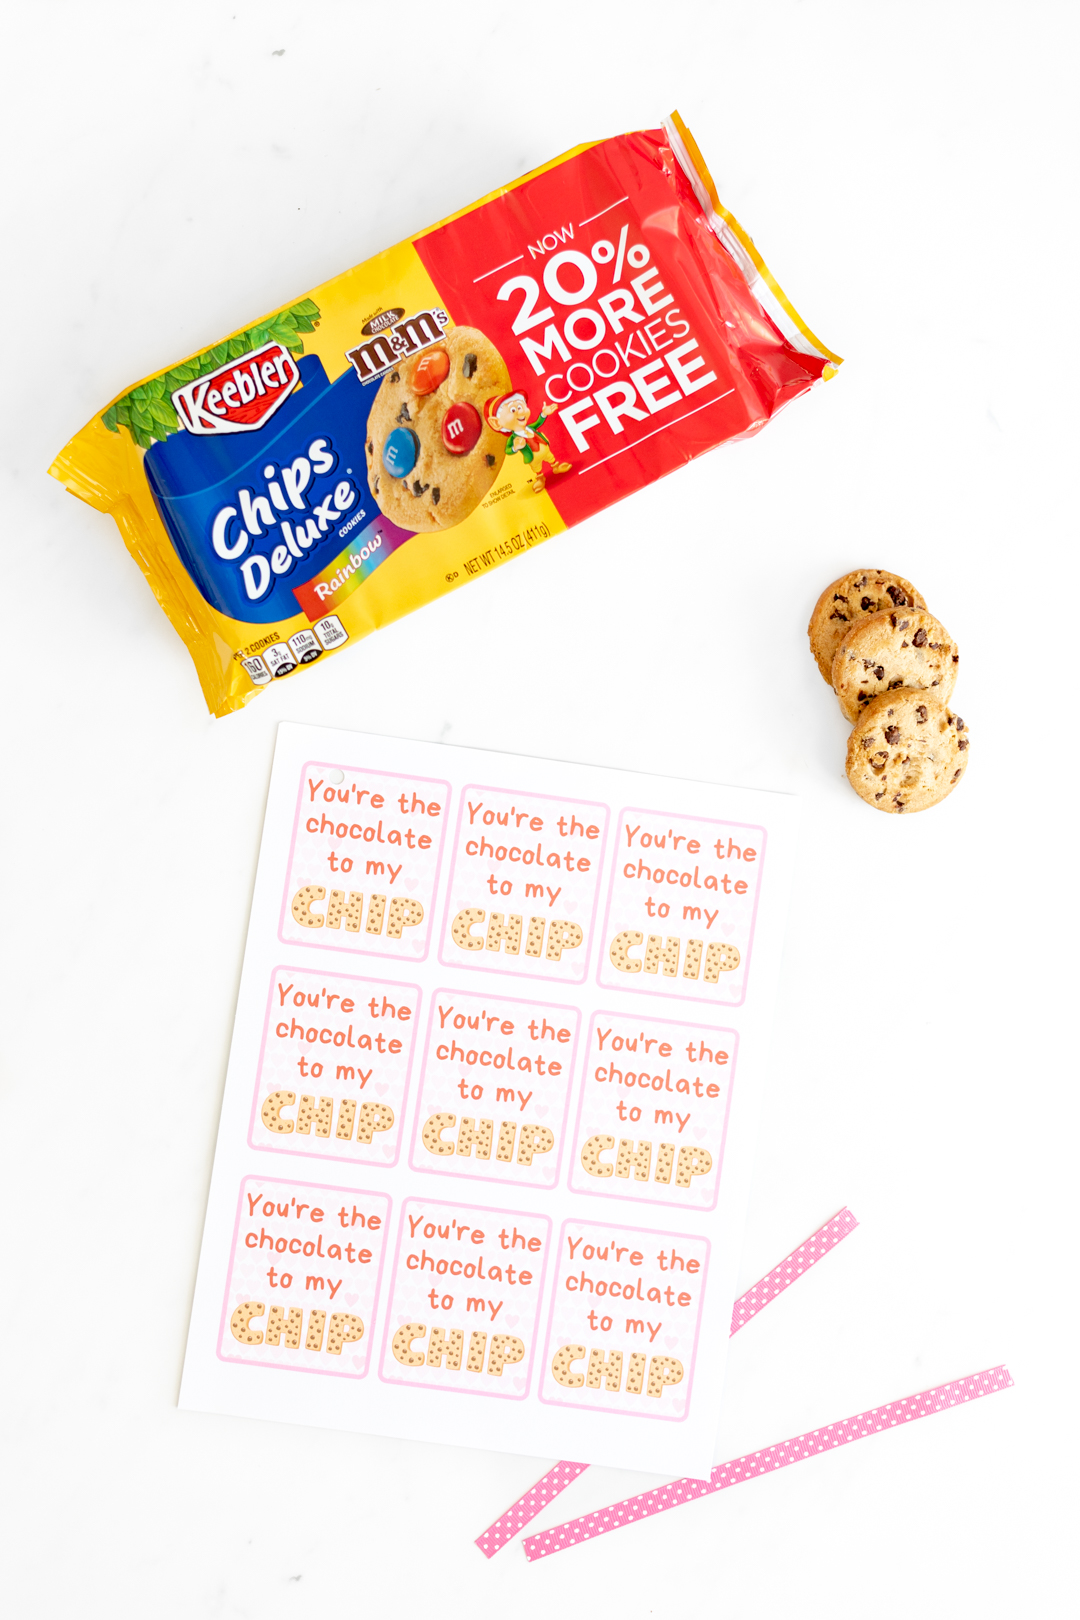 Printable Valentine Cards and pack of cookies